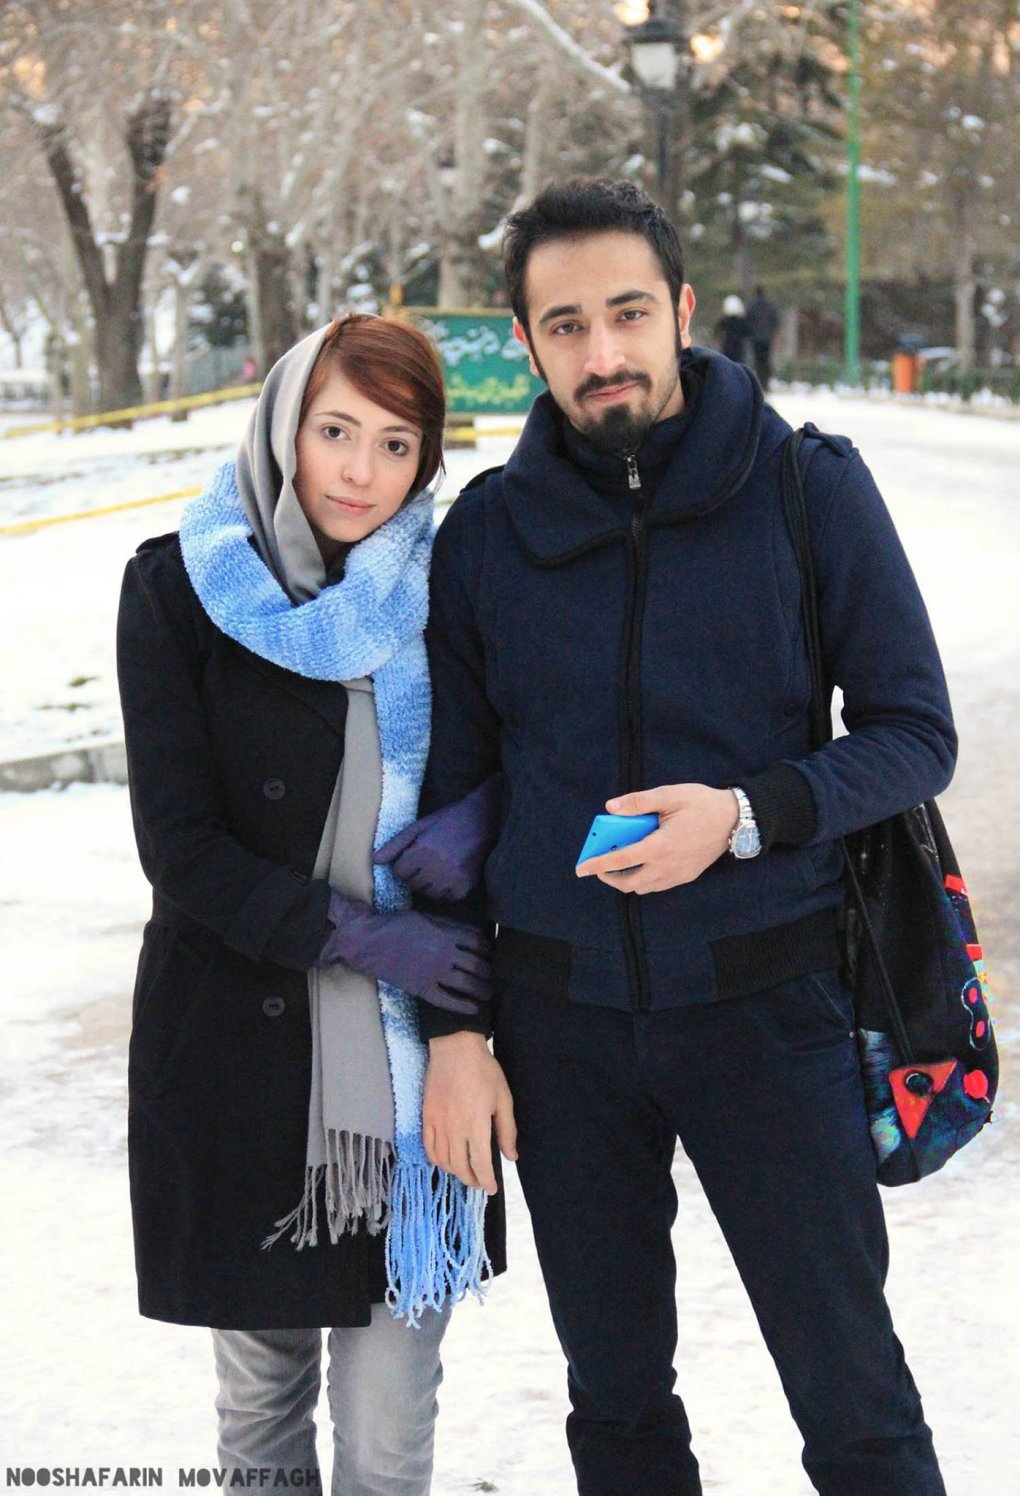 abjgysb - rarely seen photos of my great city tehran,iran and its' beautiful people